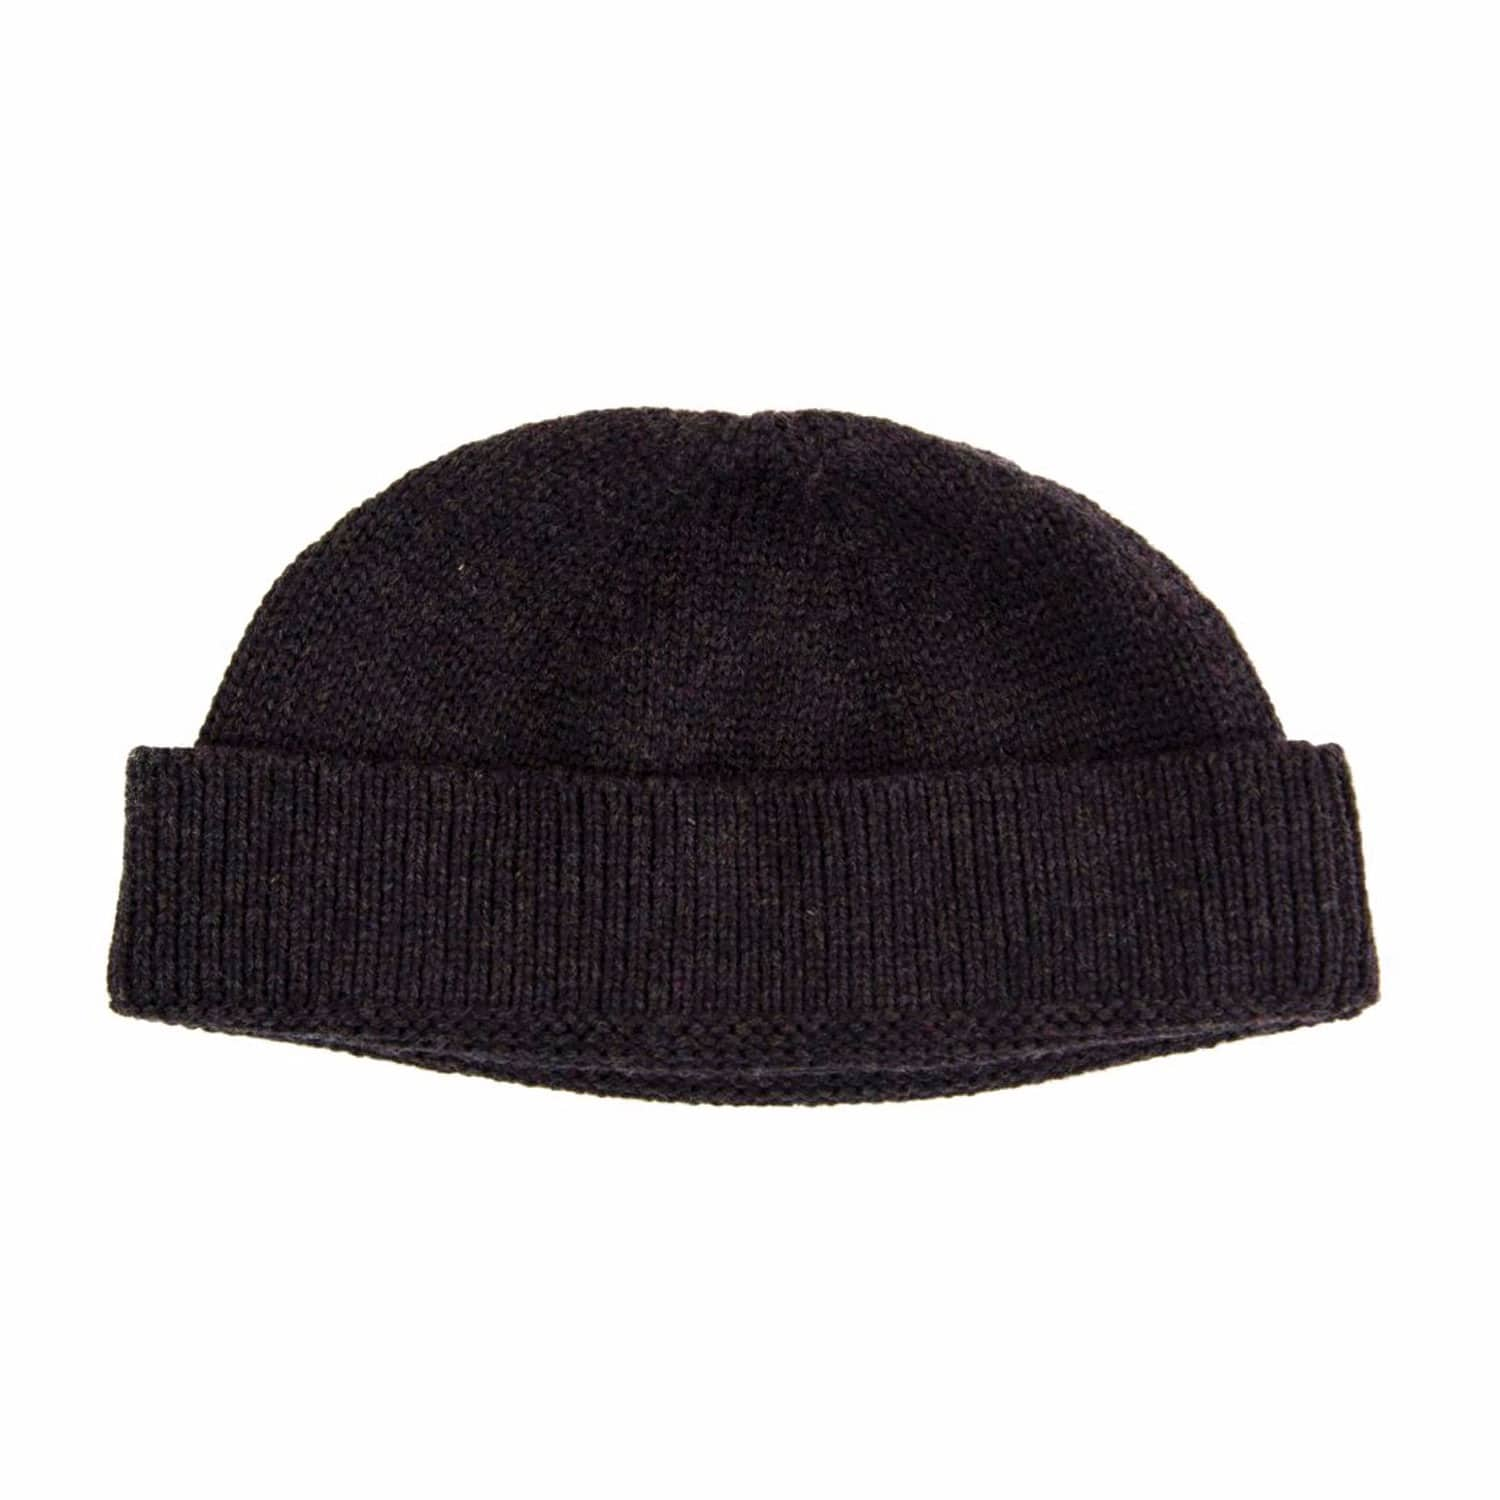 faa9ed52ba7 Charcoal Solid Wool Fisherman Beanie image